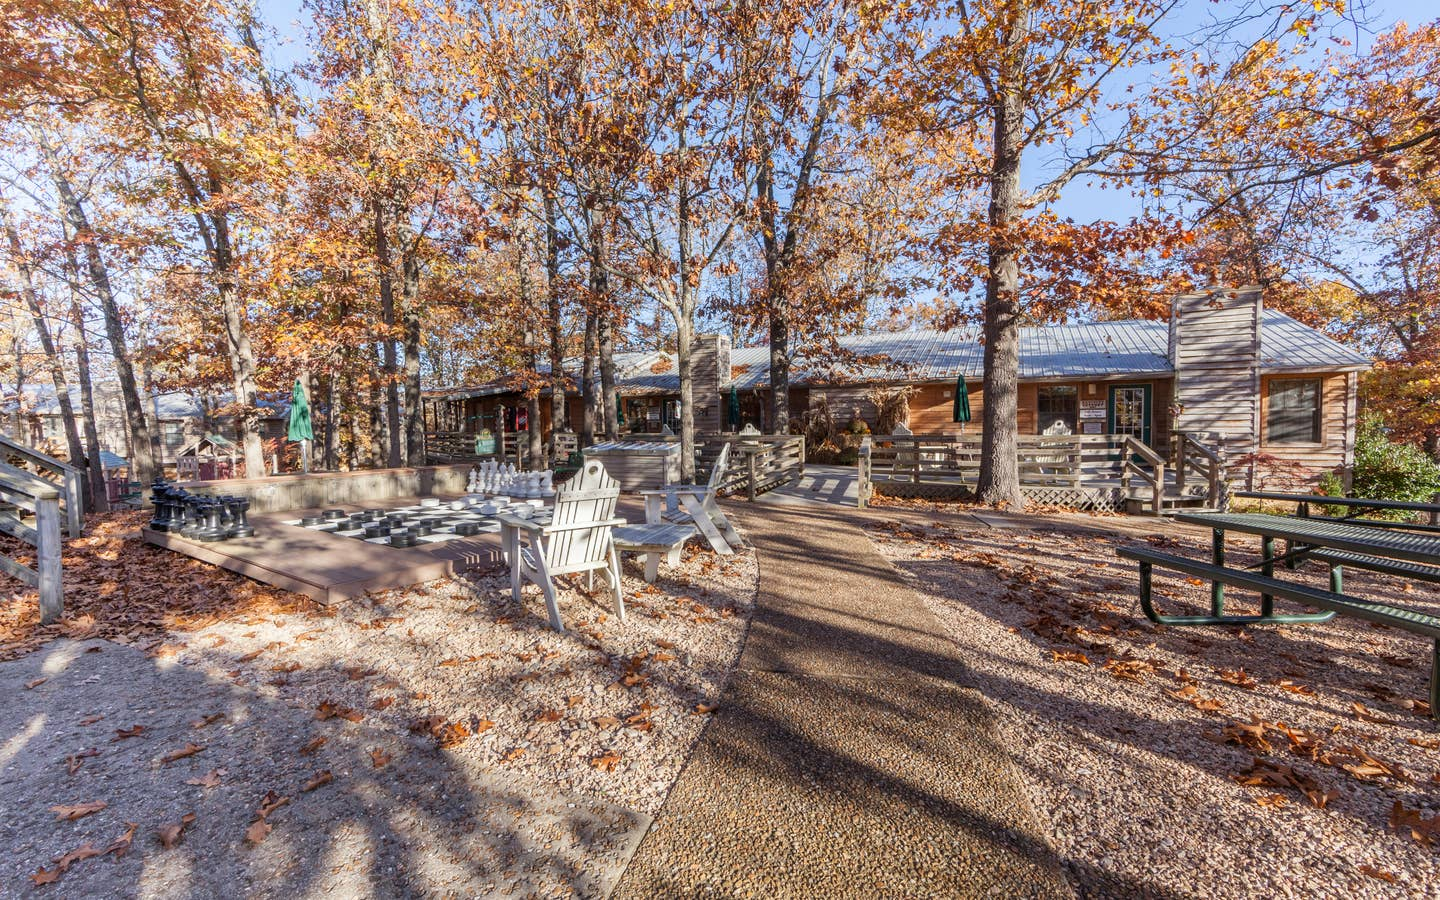 Outdoor picnic tables surrounded by trees at Ozark Mountain Resort in Kimberling City, MO.